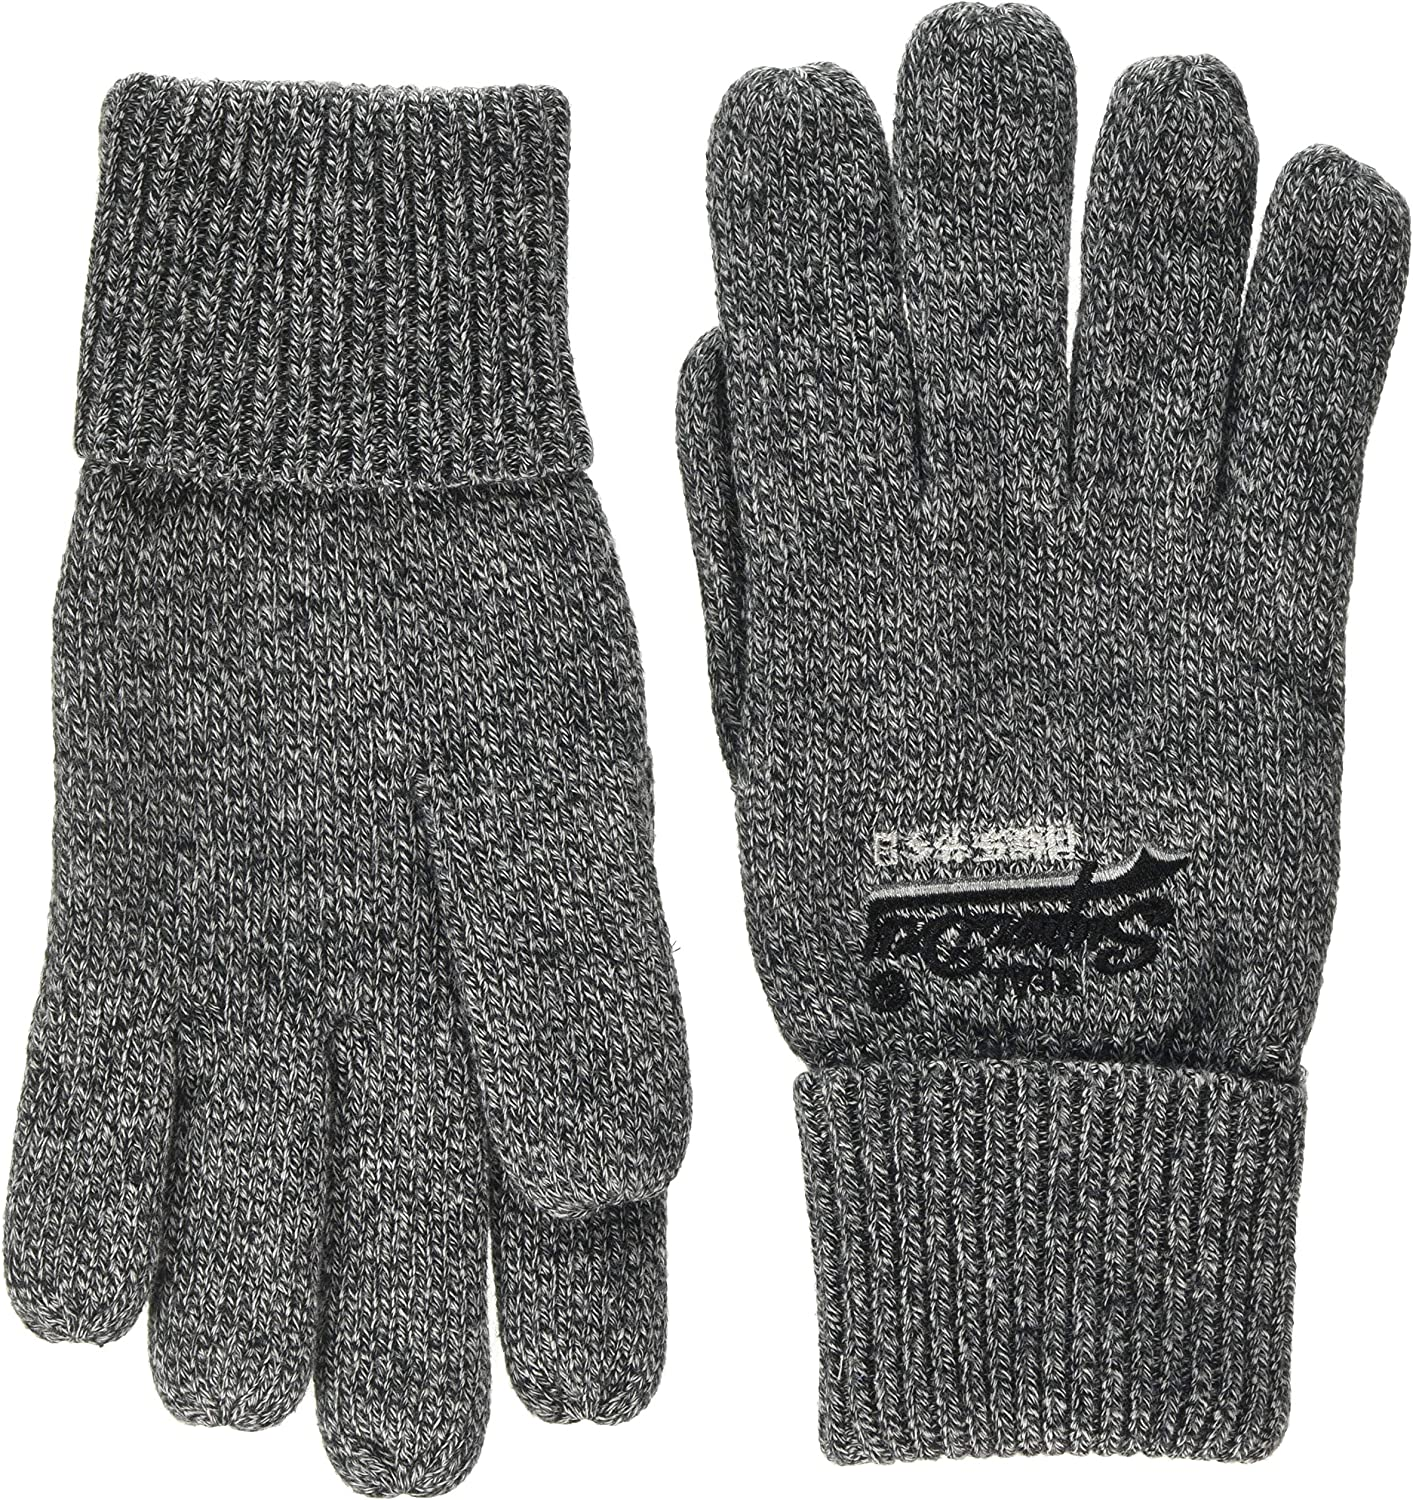 Superdry Mens Orange Label Gloves